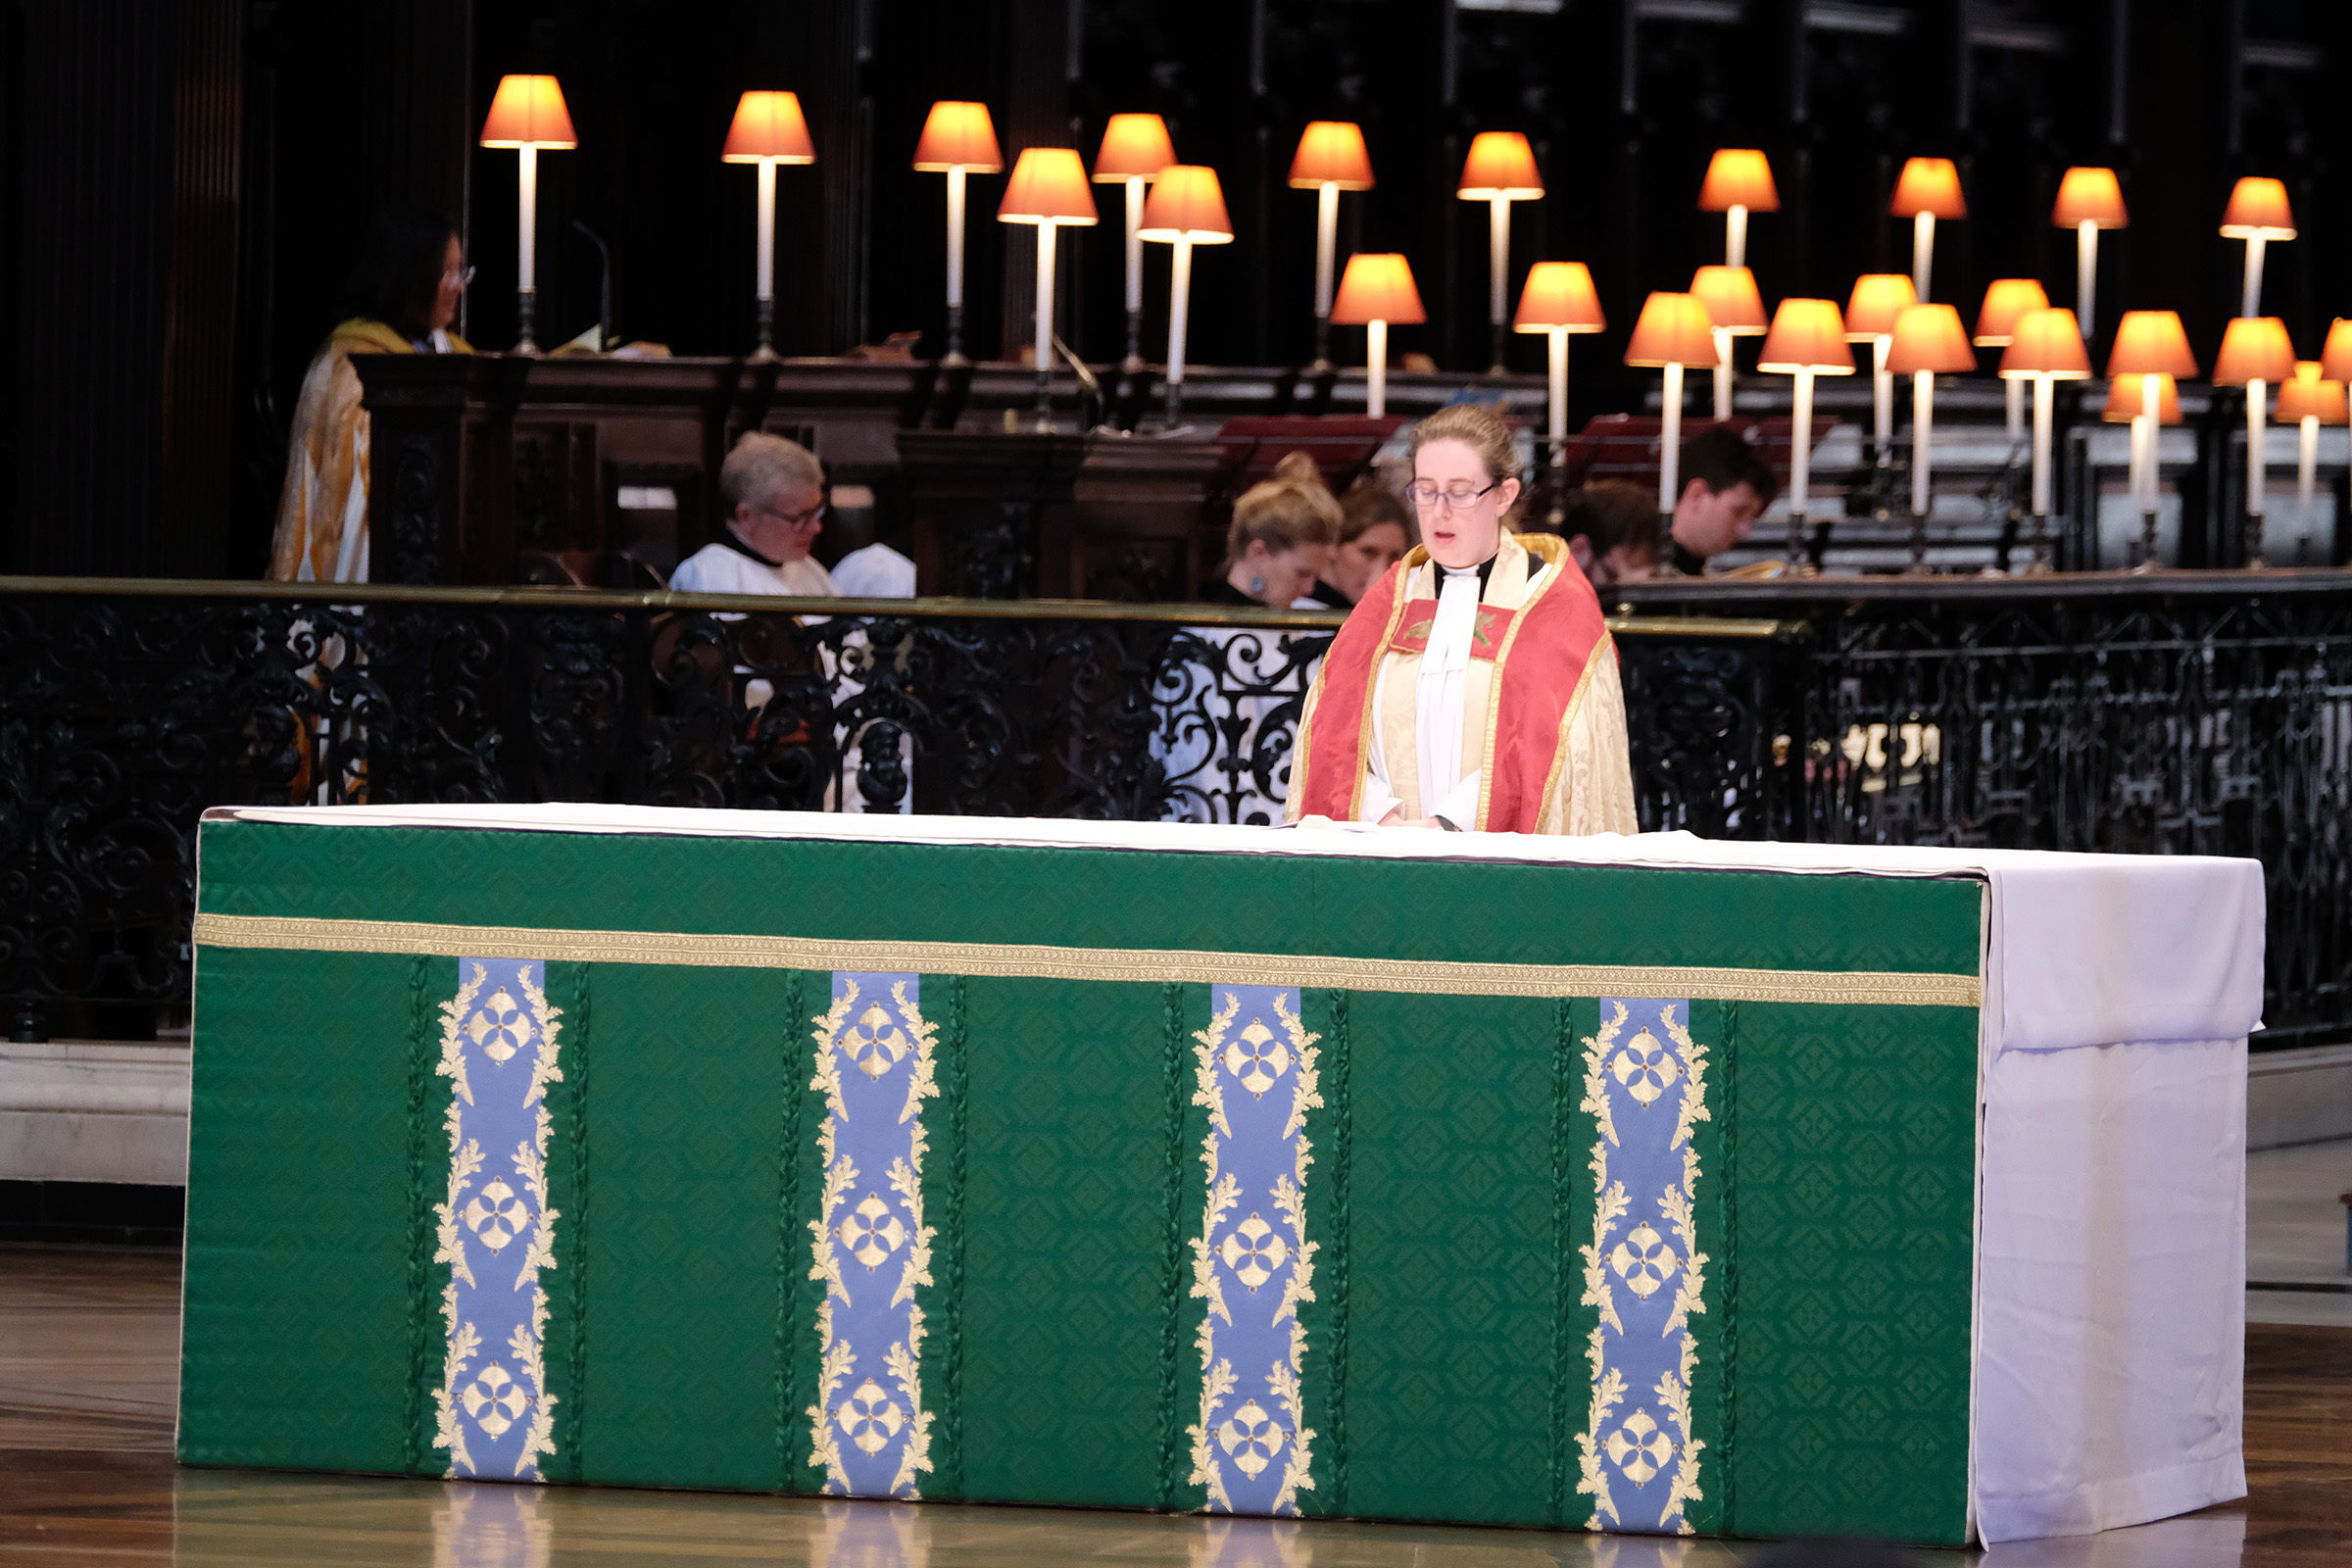 Rev Rosemary Morton, Minor Canon and Succentor